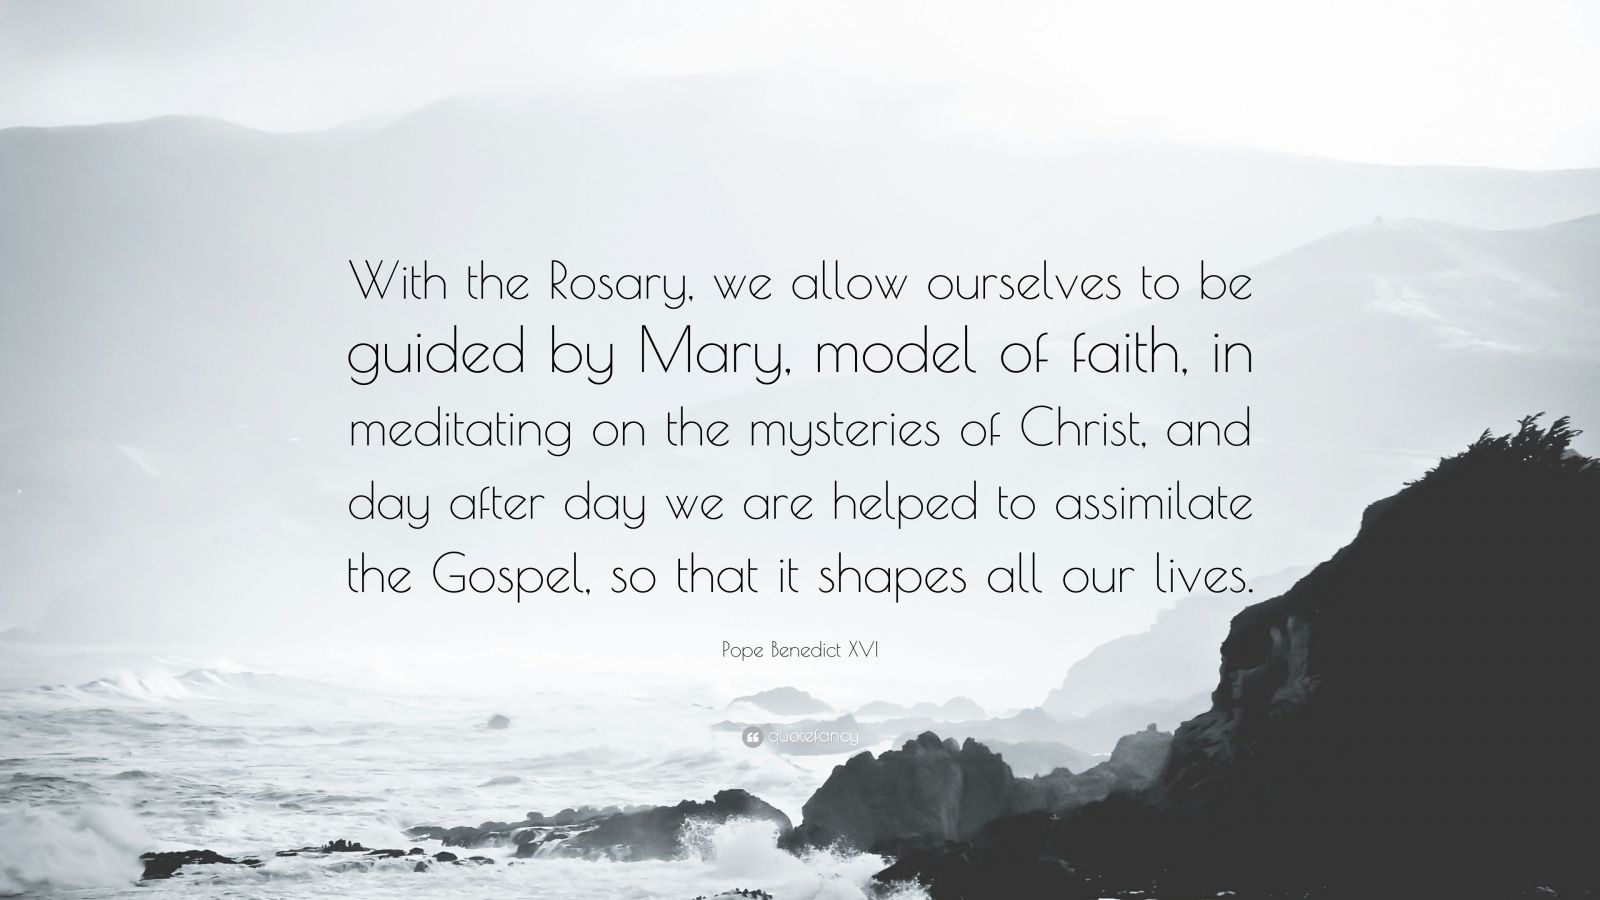 """Pope Benedict XVI Quote: """"With the Rosary, we allow ourselves to be guided by Mary, model of faith, in meditating on the mysteries of Christ, and day after day we are helped to assimilate the Gospel, so that it shapes all our lives."""""""